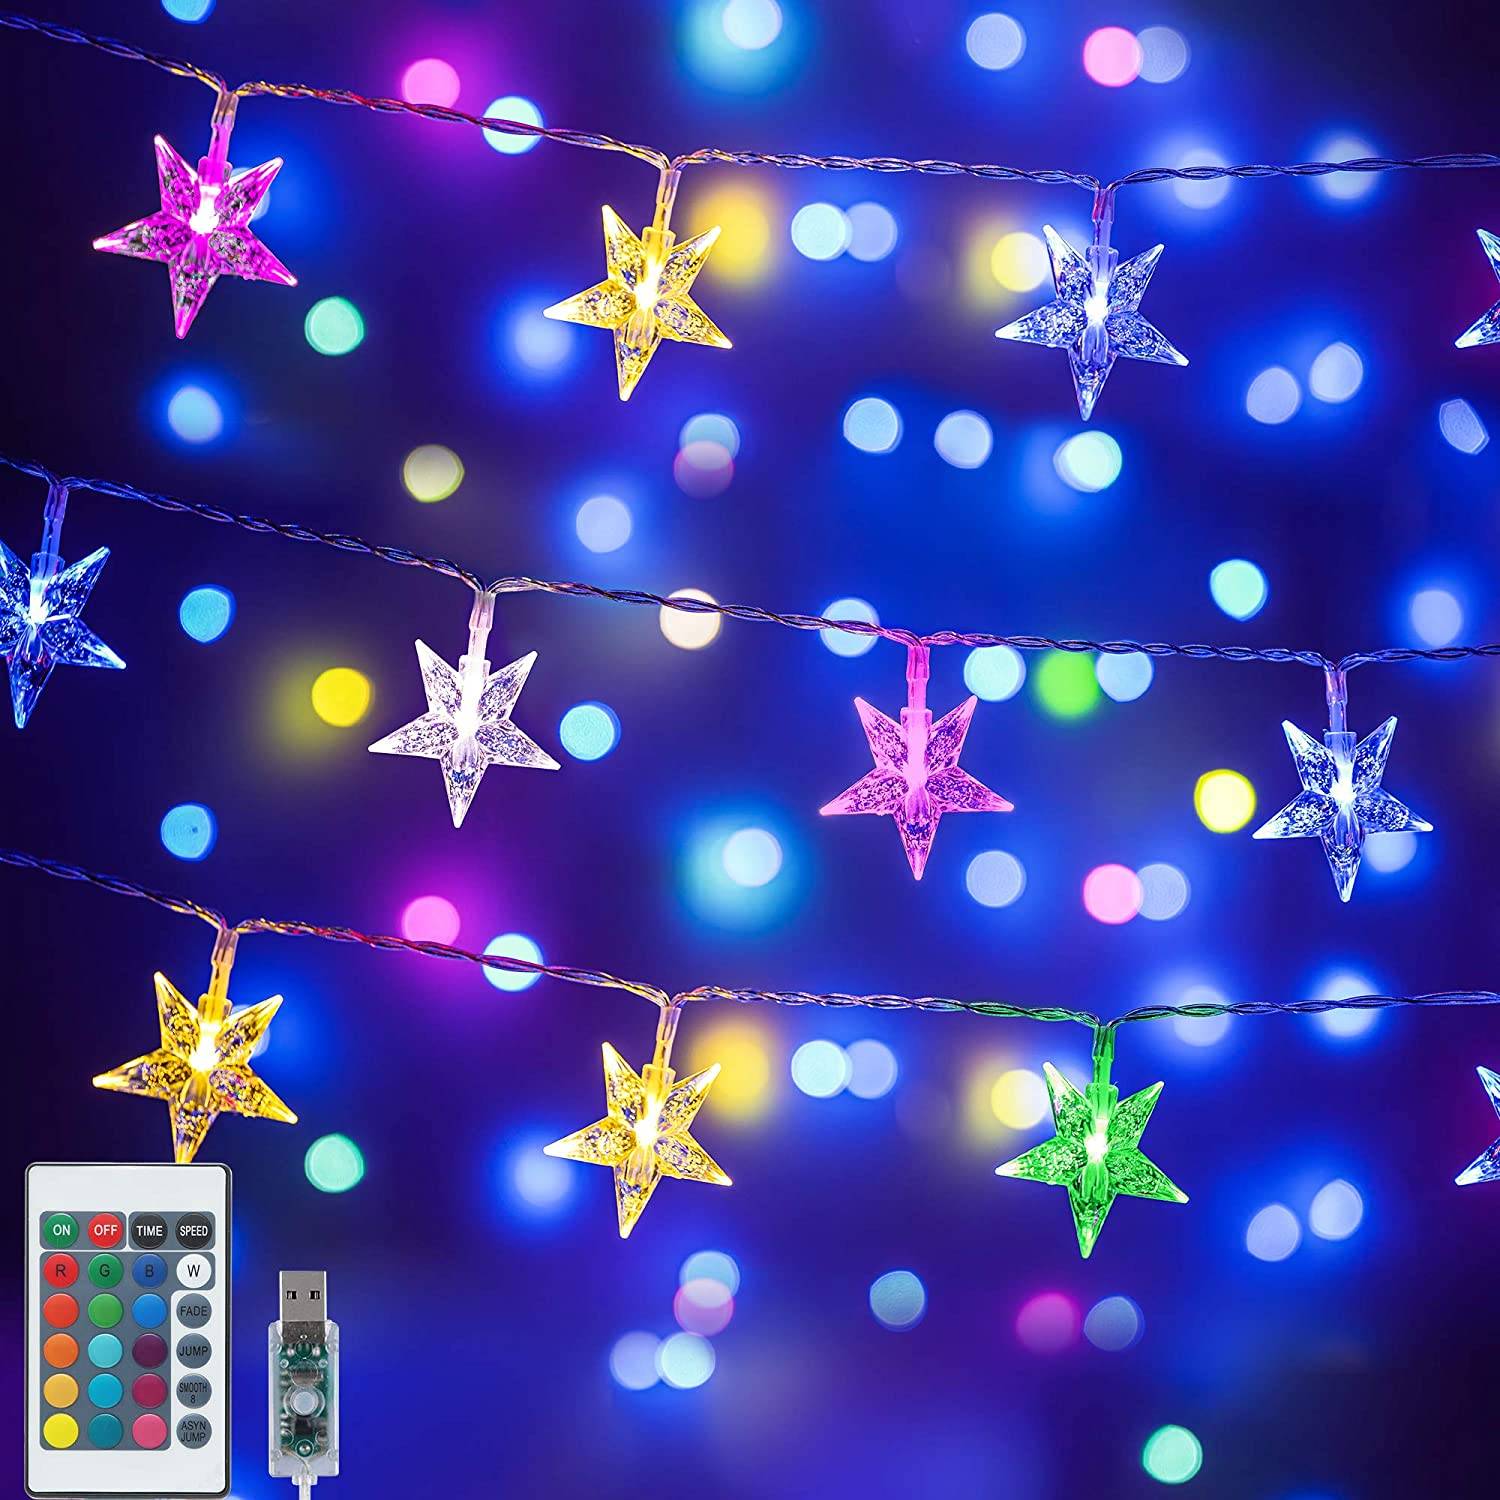 Color Changing Star String Lights,16.4 ft 50 LED USB Powered Star Fairy Lights,Indoor Hanging String Lights with Remote Control for Girls Kids Bedroom Dorm Party Christmas Decor- 16 Colors